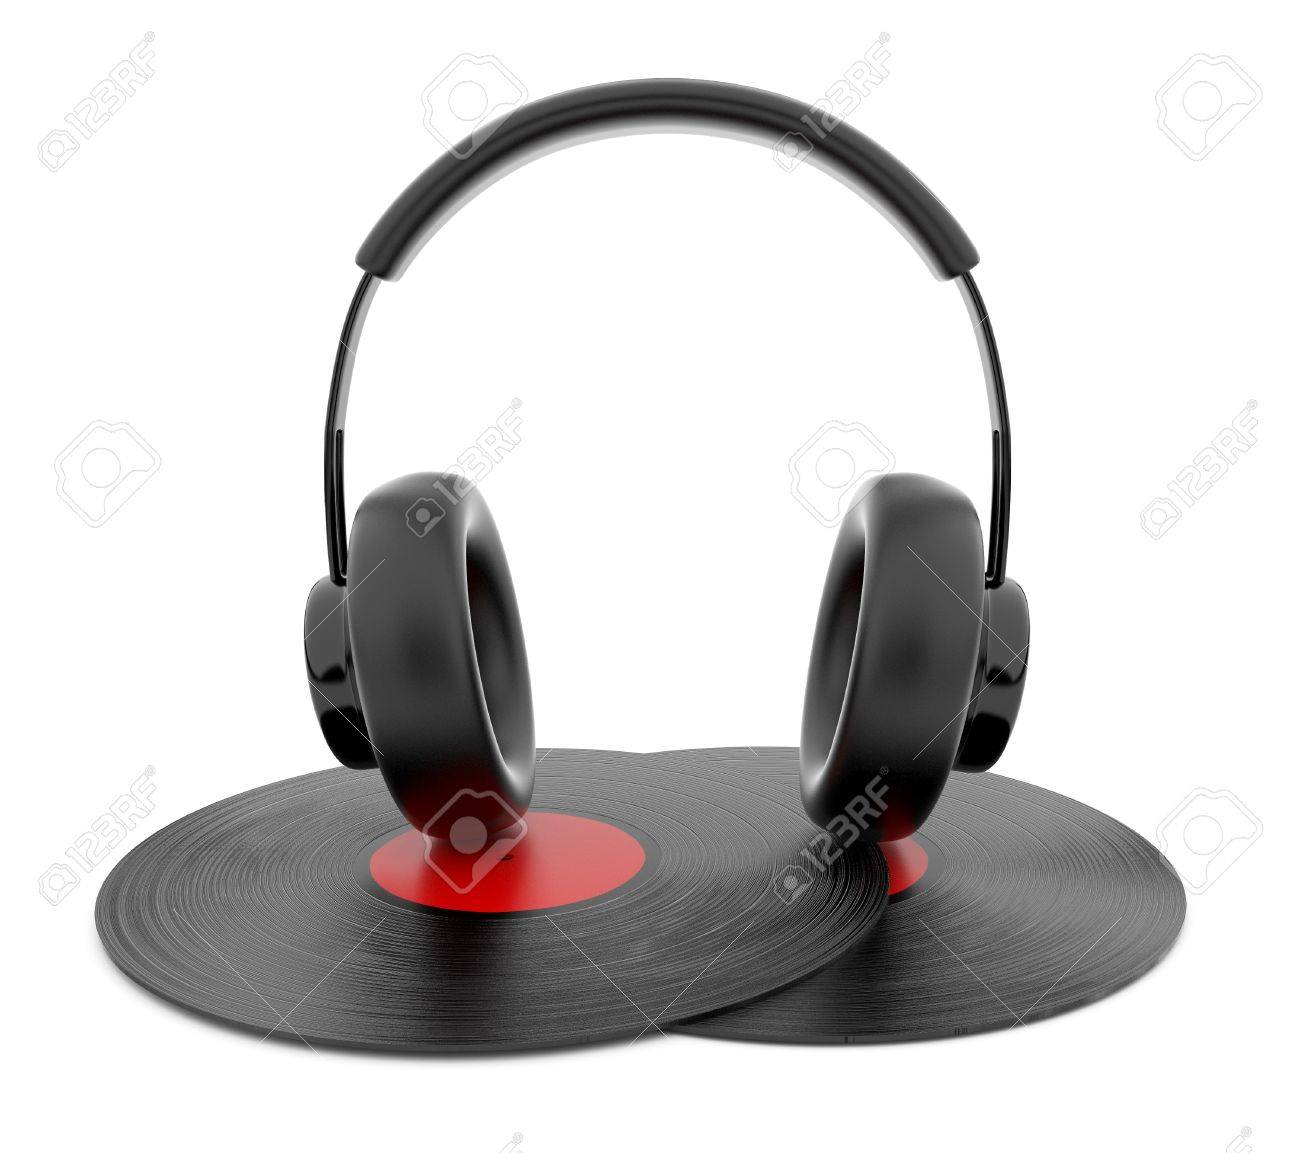 audio headphone on gramophone vinyl disc 3d. icon. isolated on